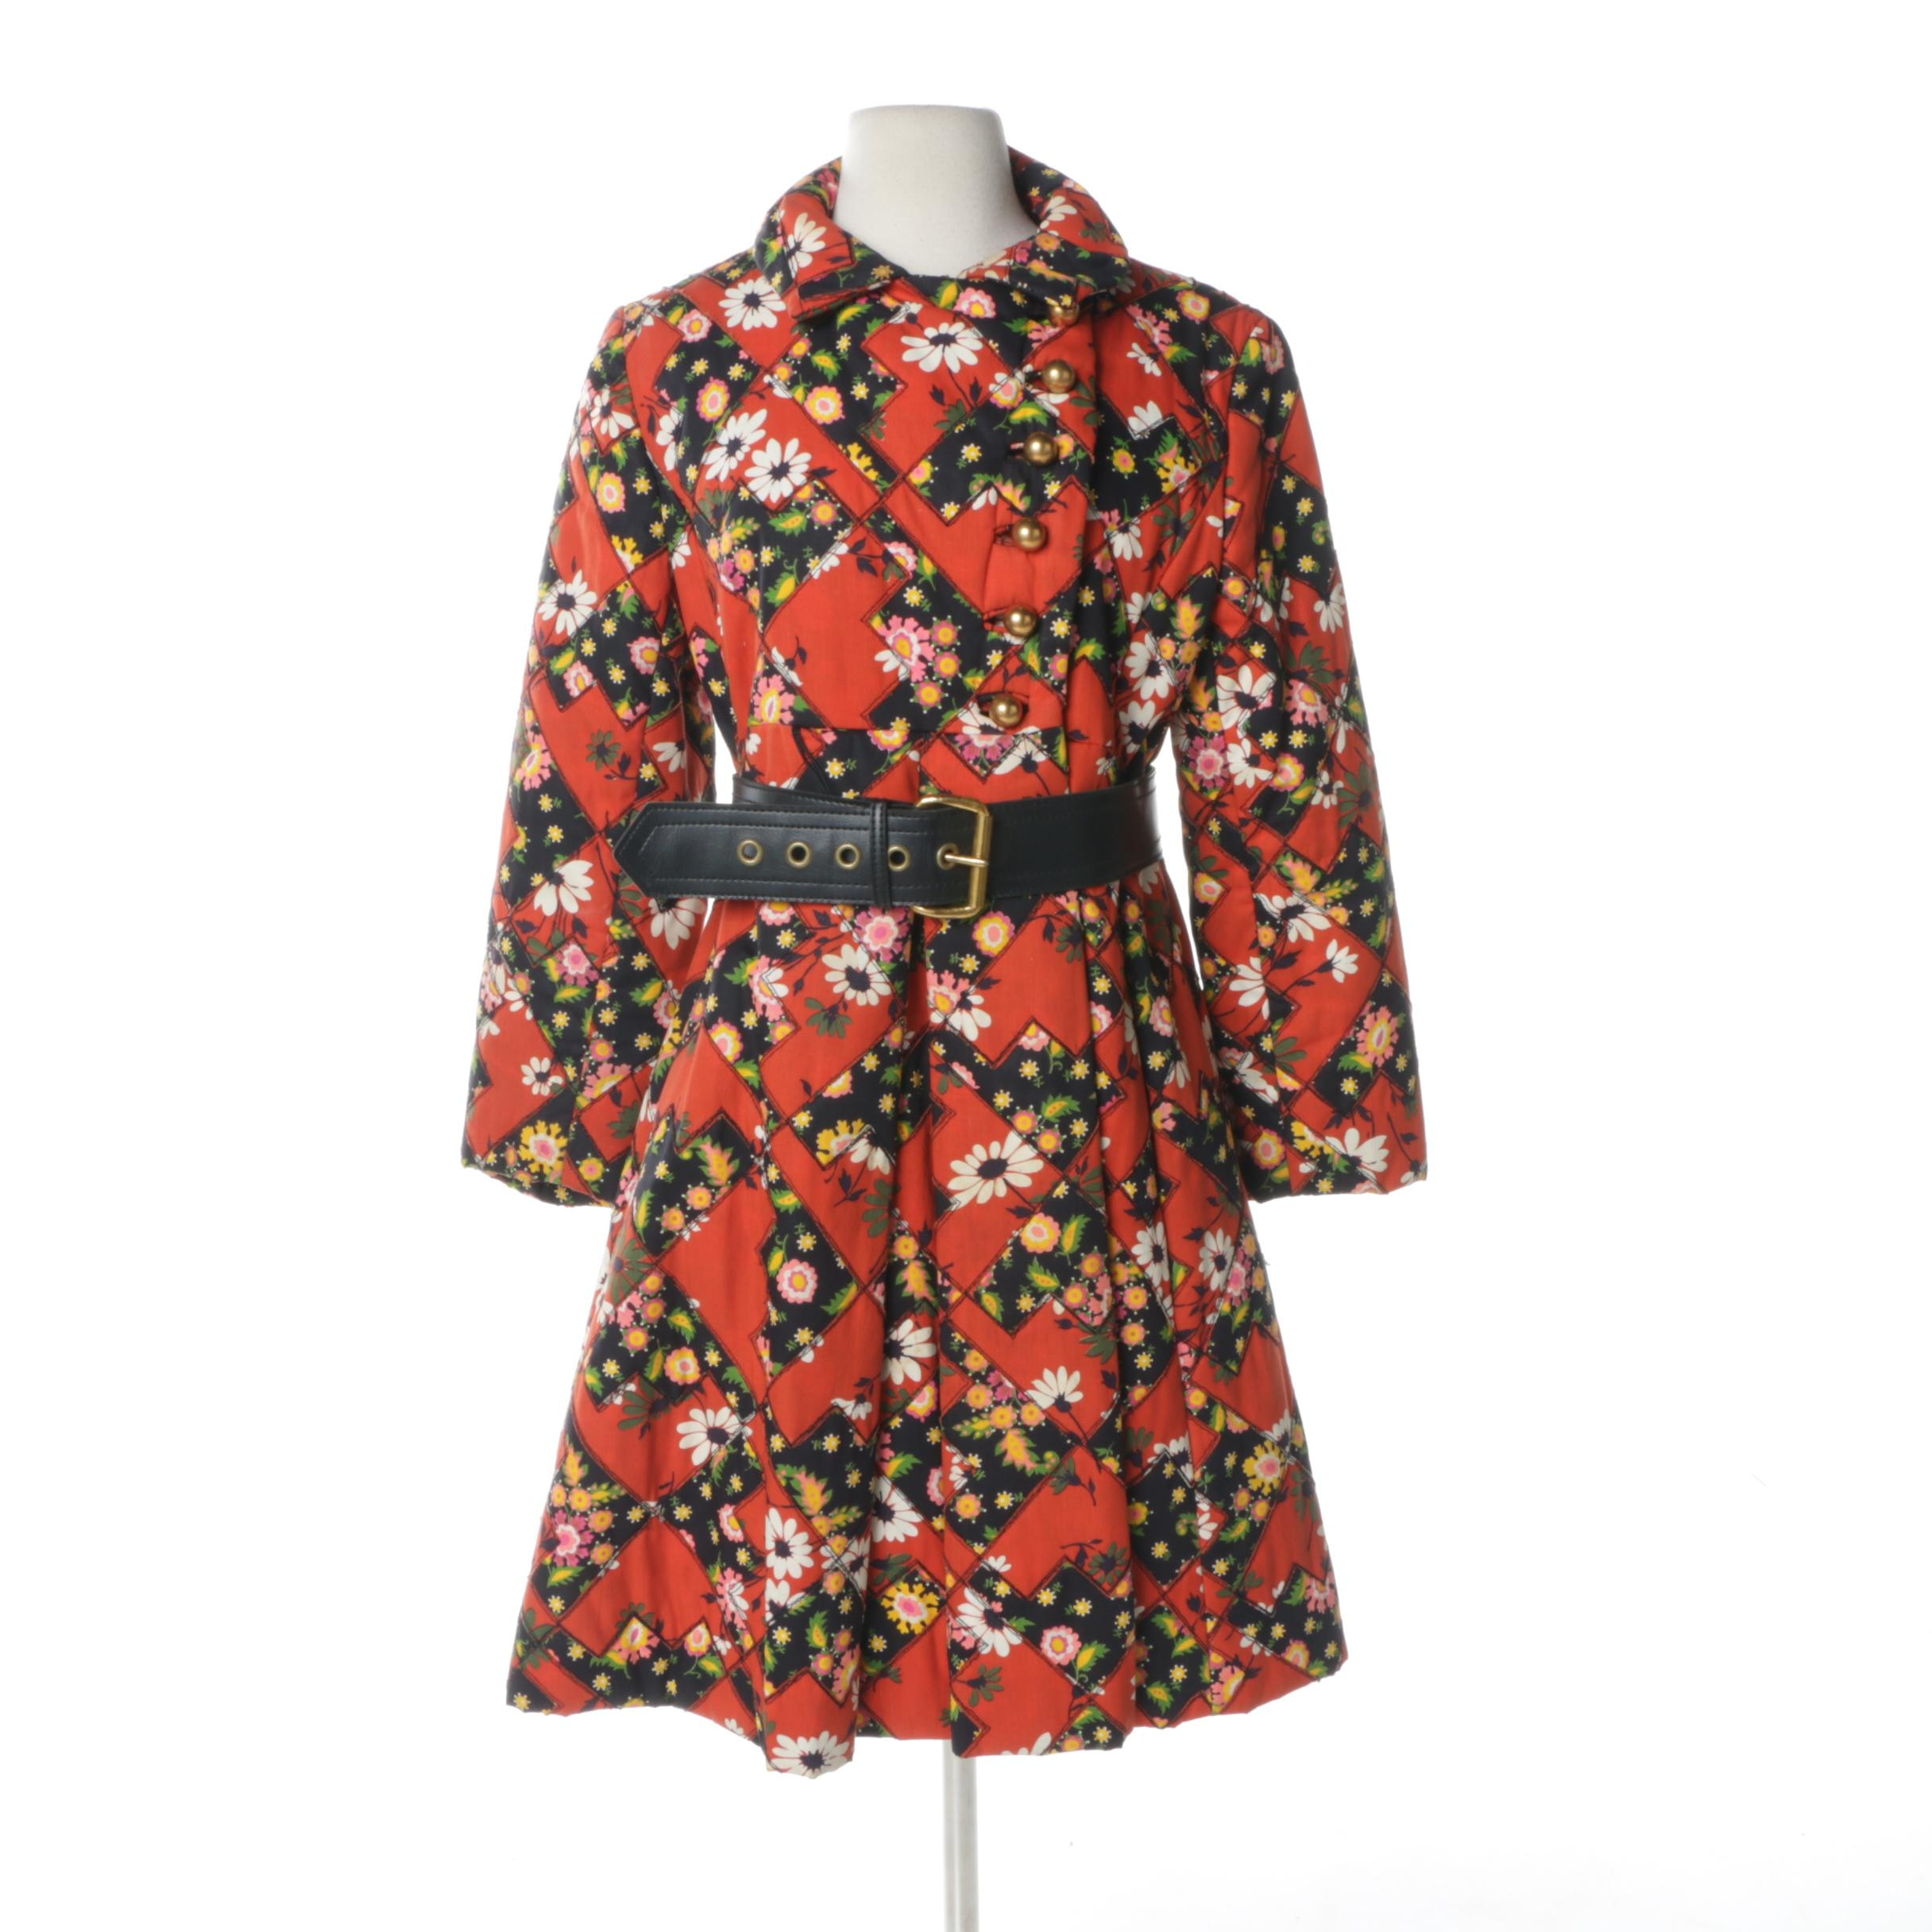 Circa 1960s Vintage Belted Swing Coat